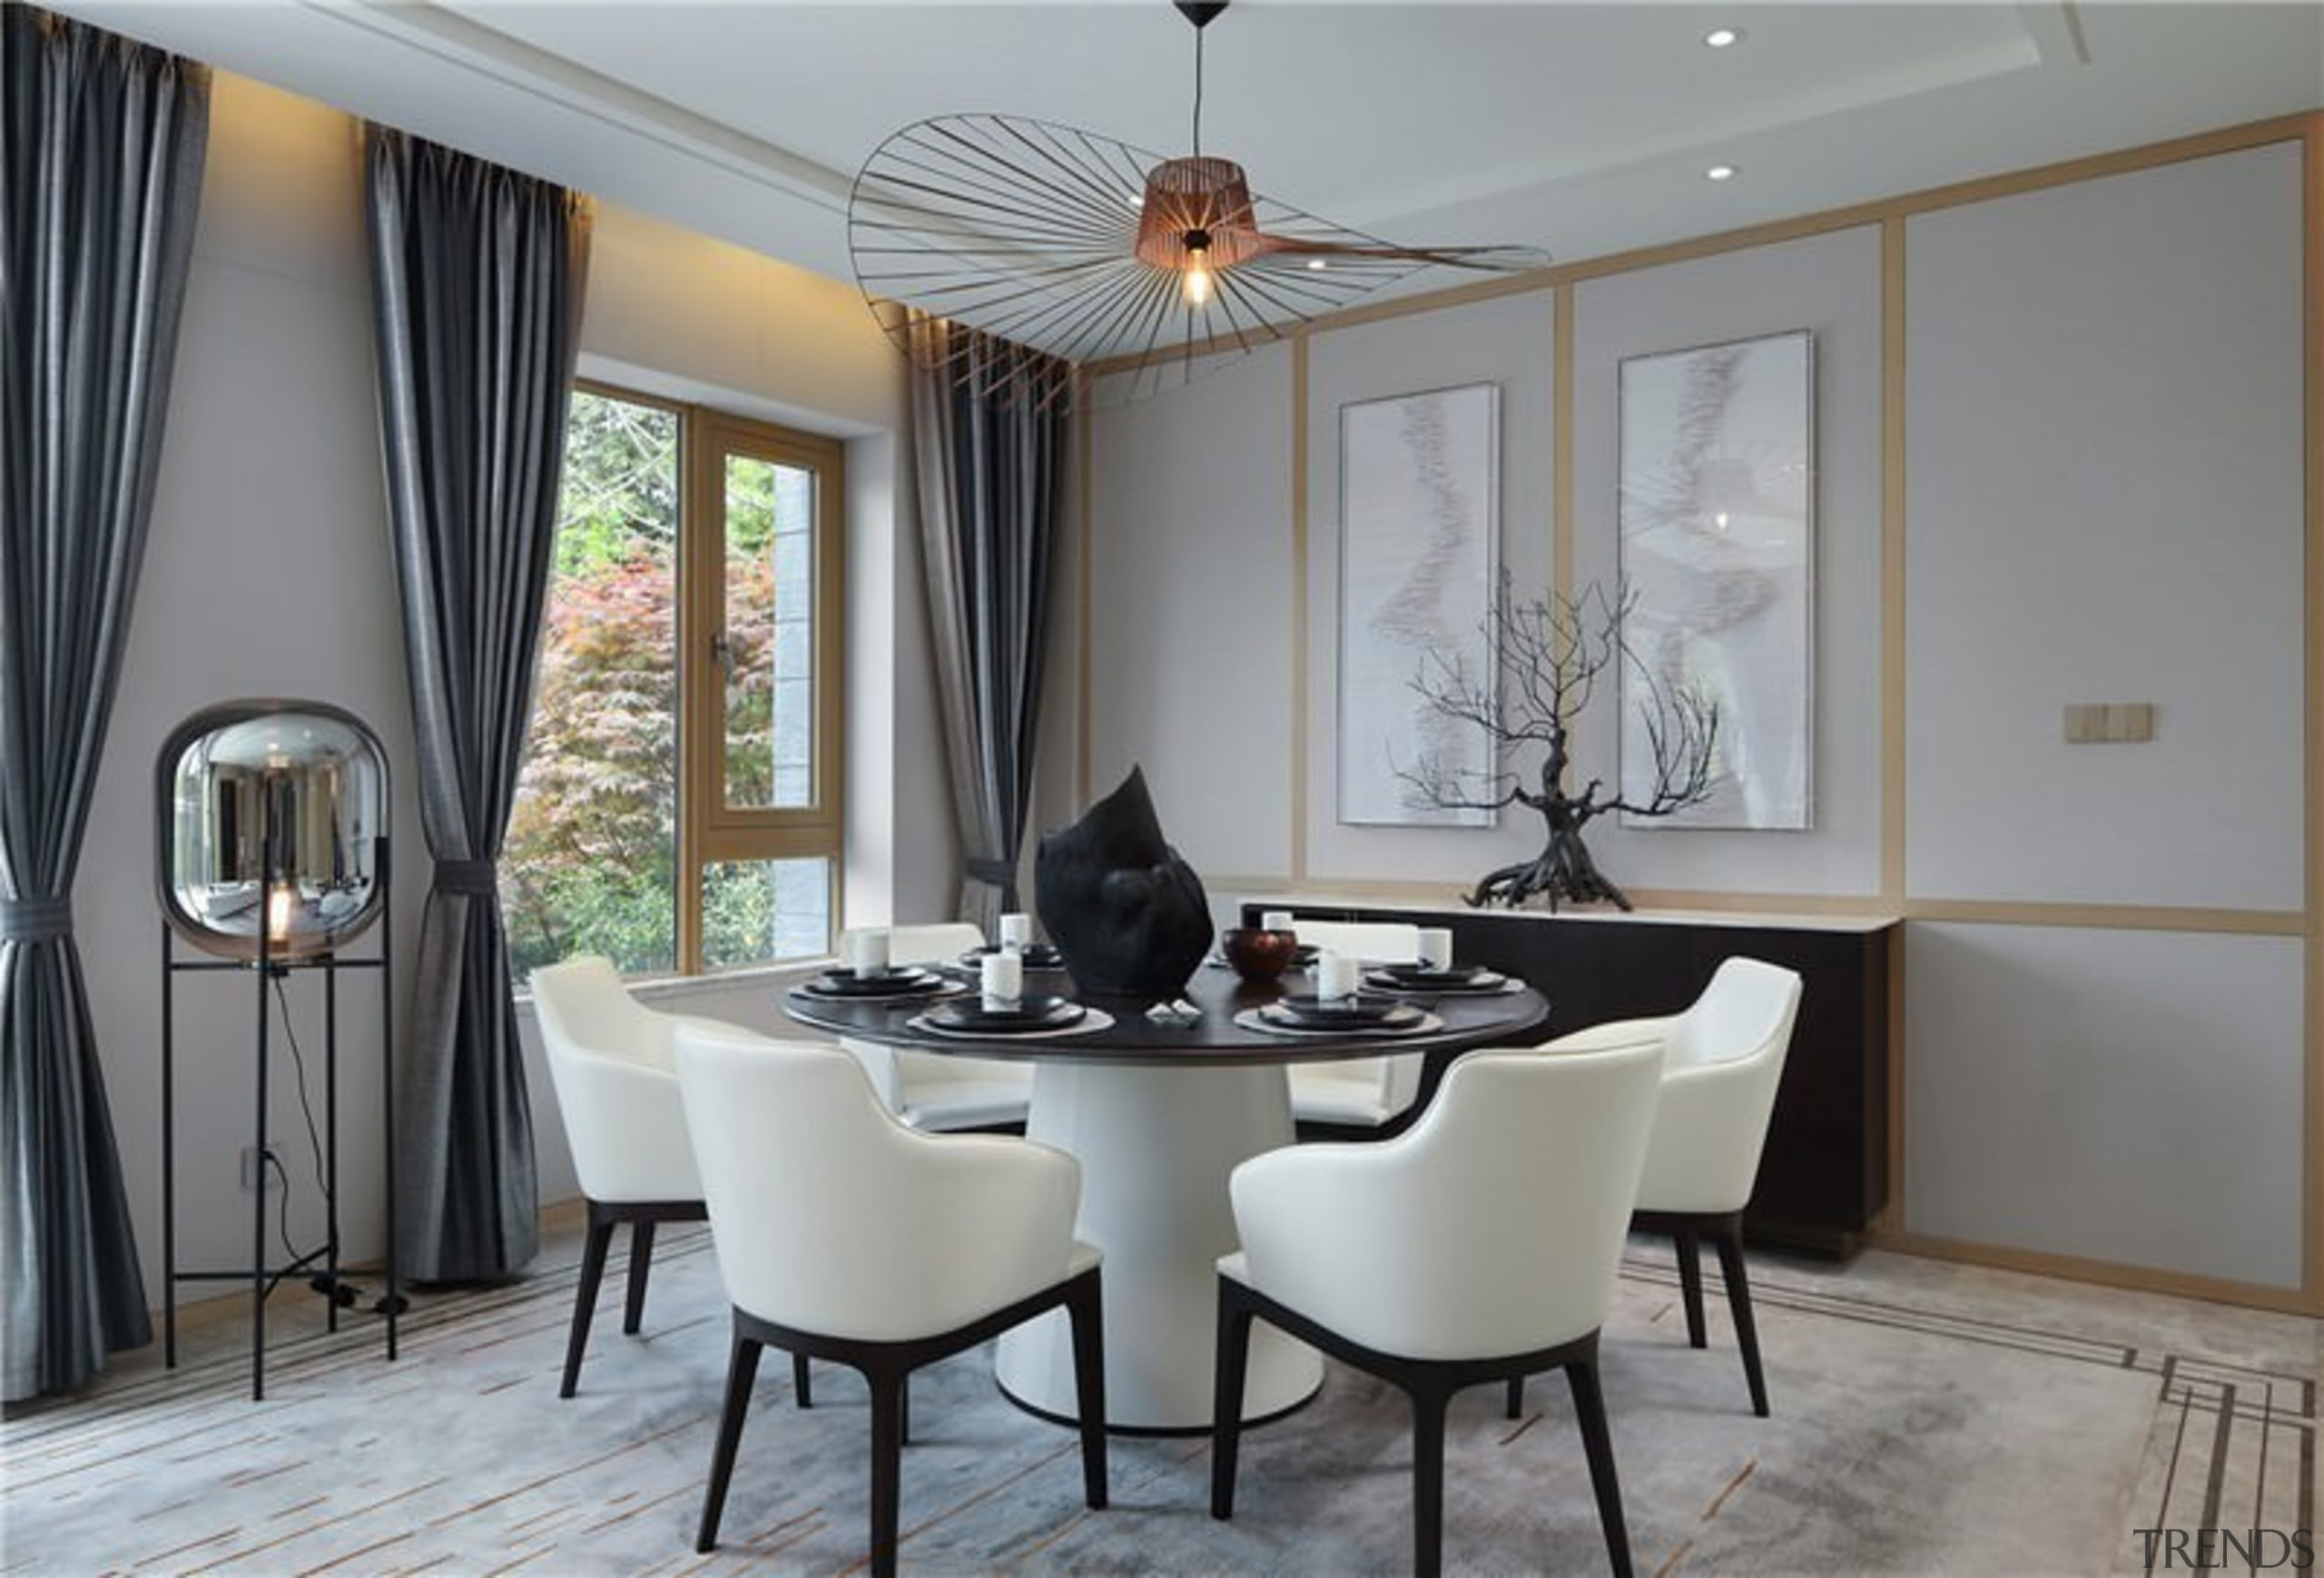 This dining area sits off from the lounge ceiling, dining room, furniture, home, interior design, living room, real estate, room, table, window, gray